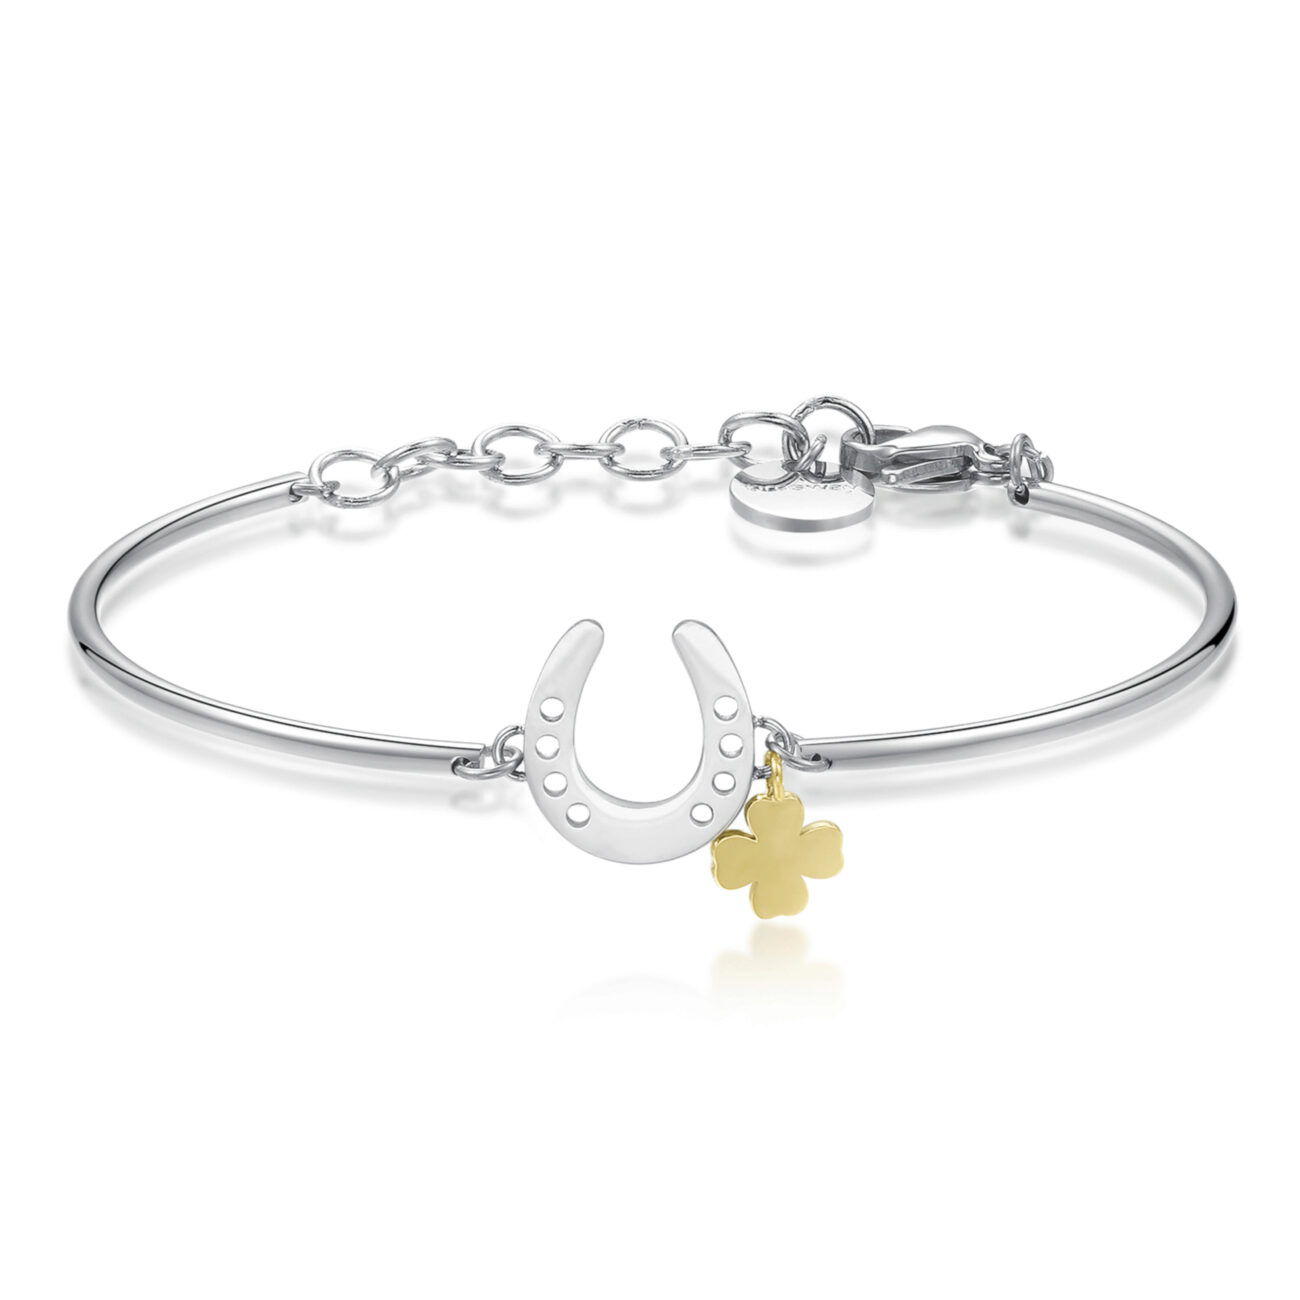 HORSESHOE: SUCCESS, GOOD FORTUNE, DESTINYA symbol of good fortune, it's the perfect good luck charm to see your hopes and dreams come true.316L Stainless steel bracelet with horsehoe and a gold pvd four-leaf clover.